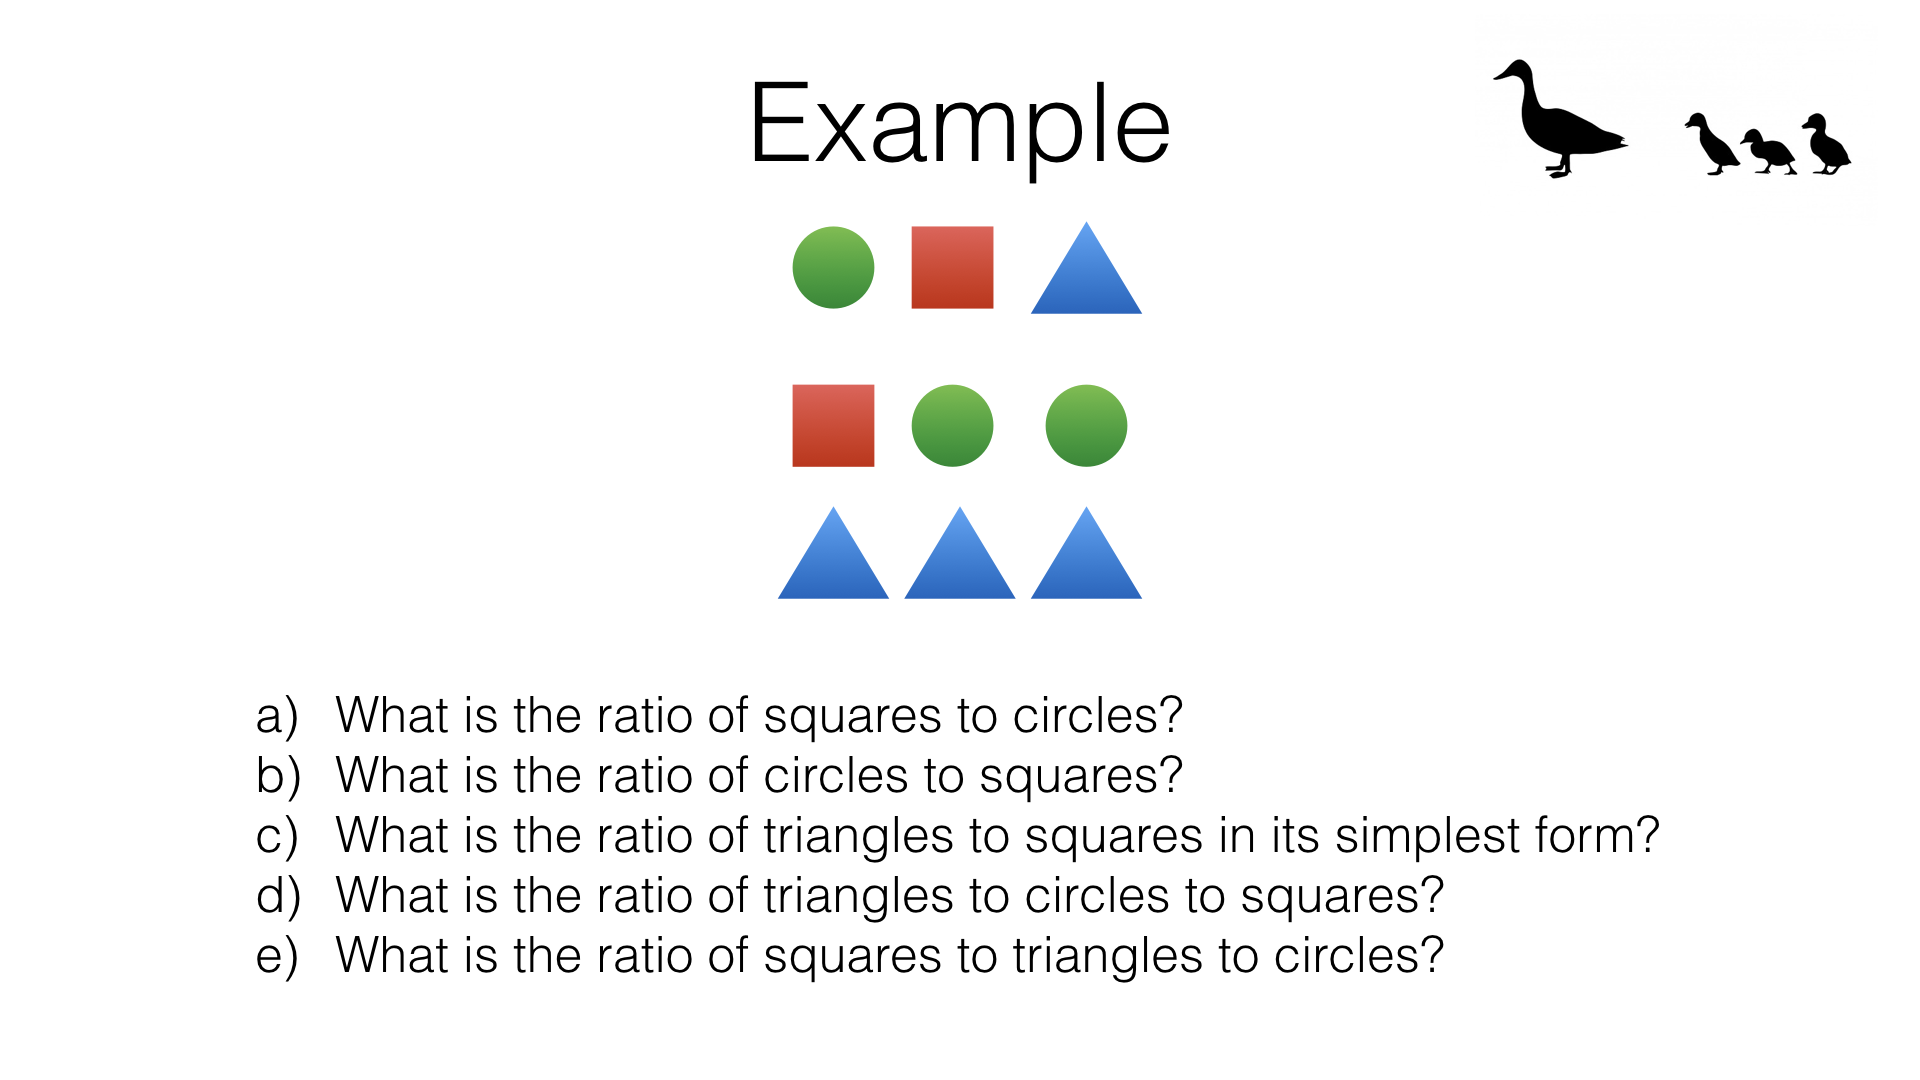 r4a using ratio notation and reducing ratios to simplest form